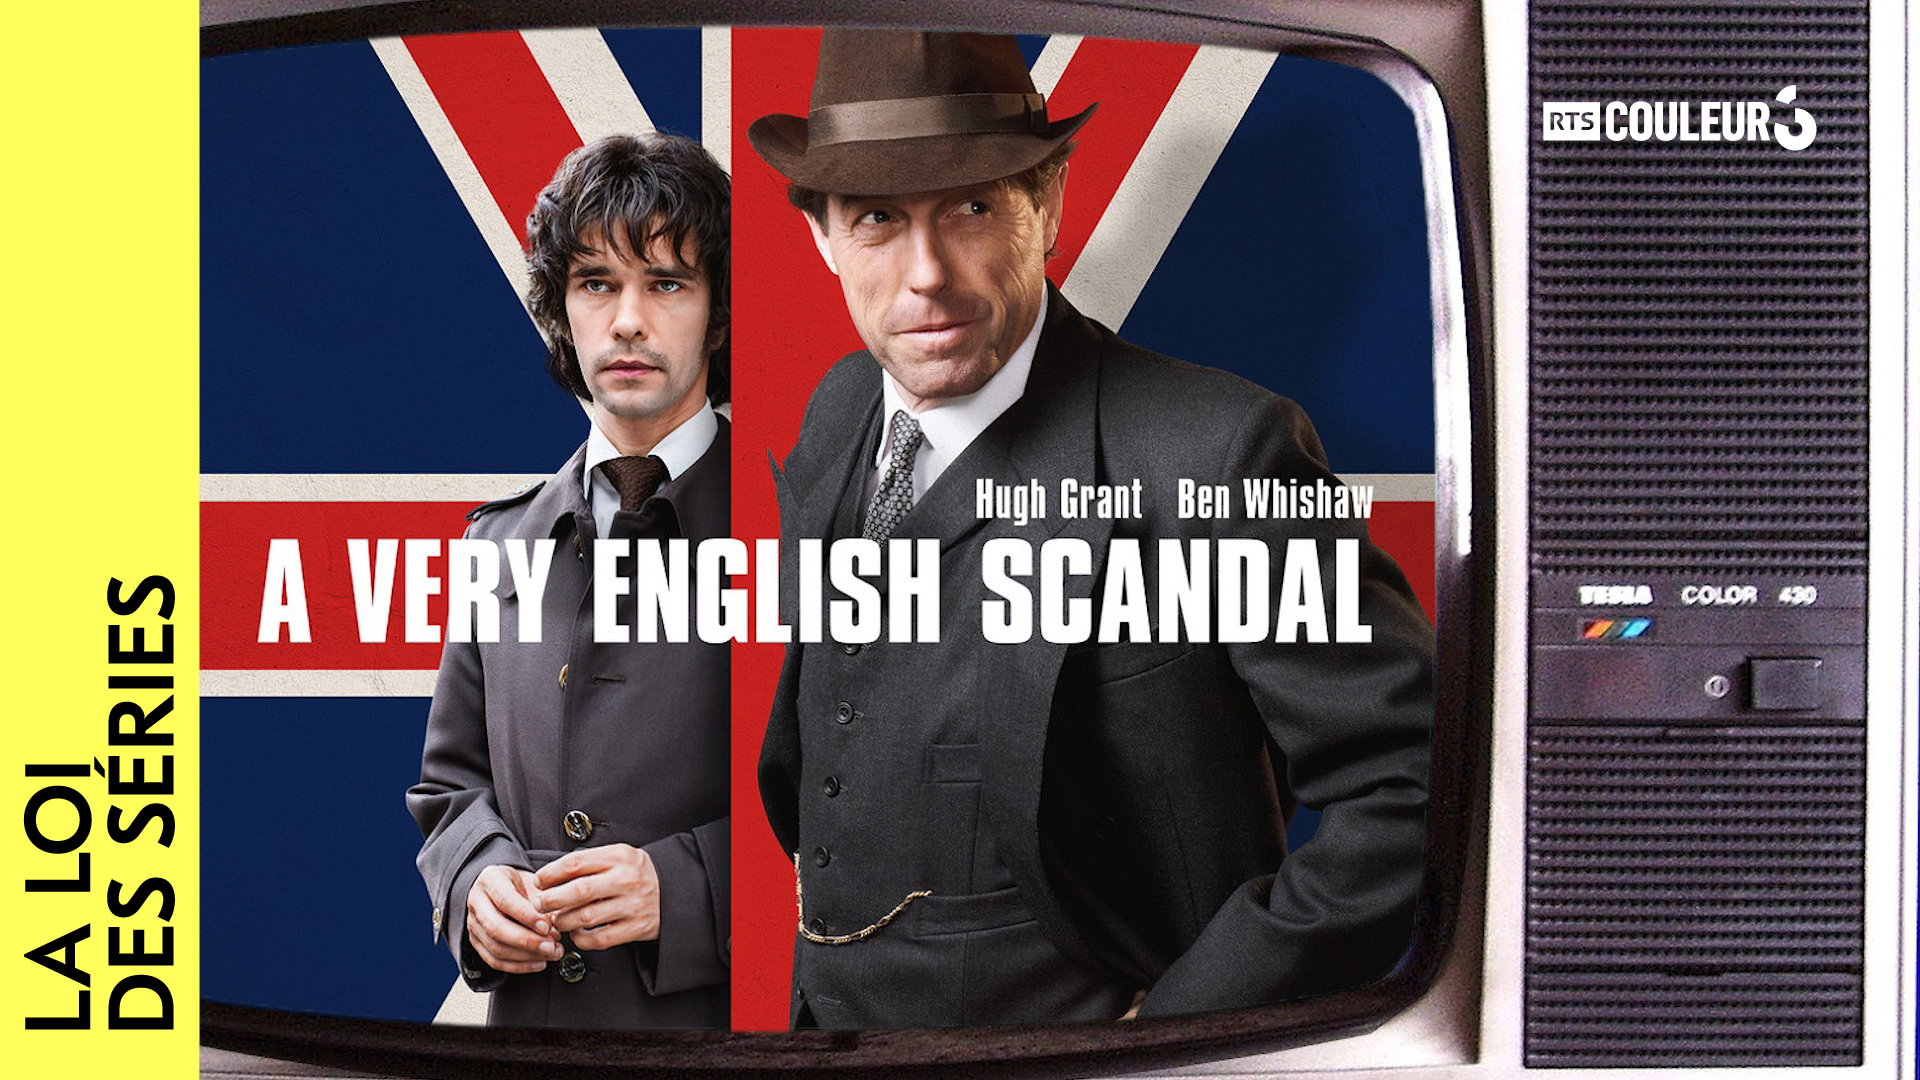 La Loi des séries - A very English Scandal.